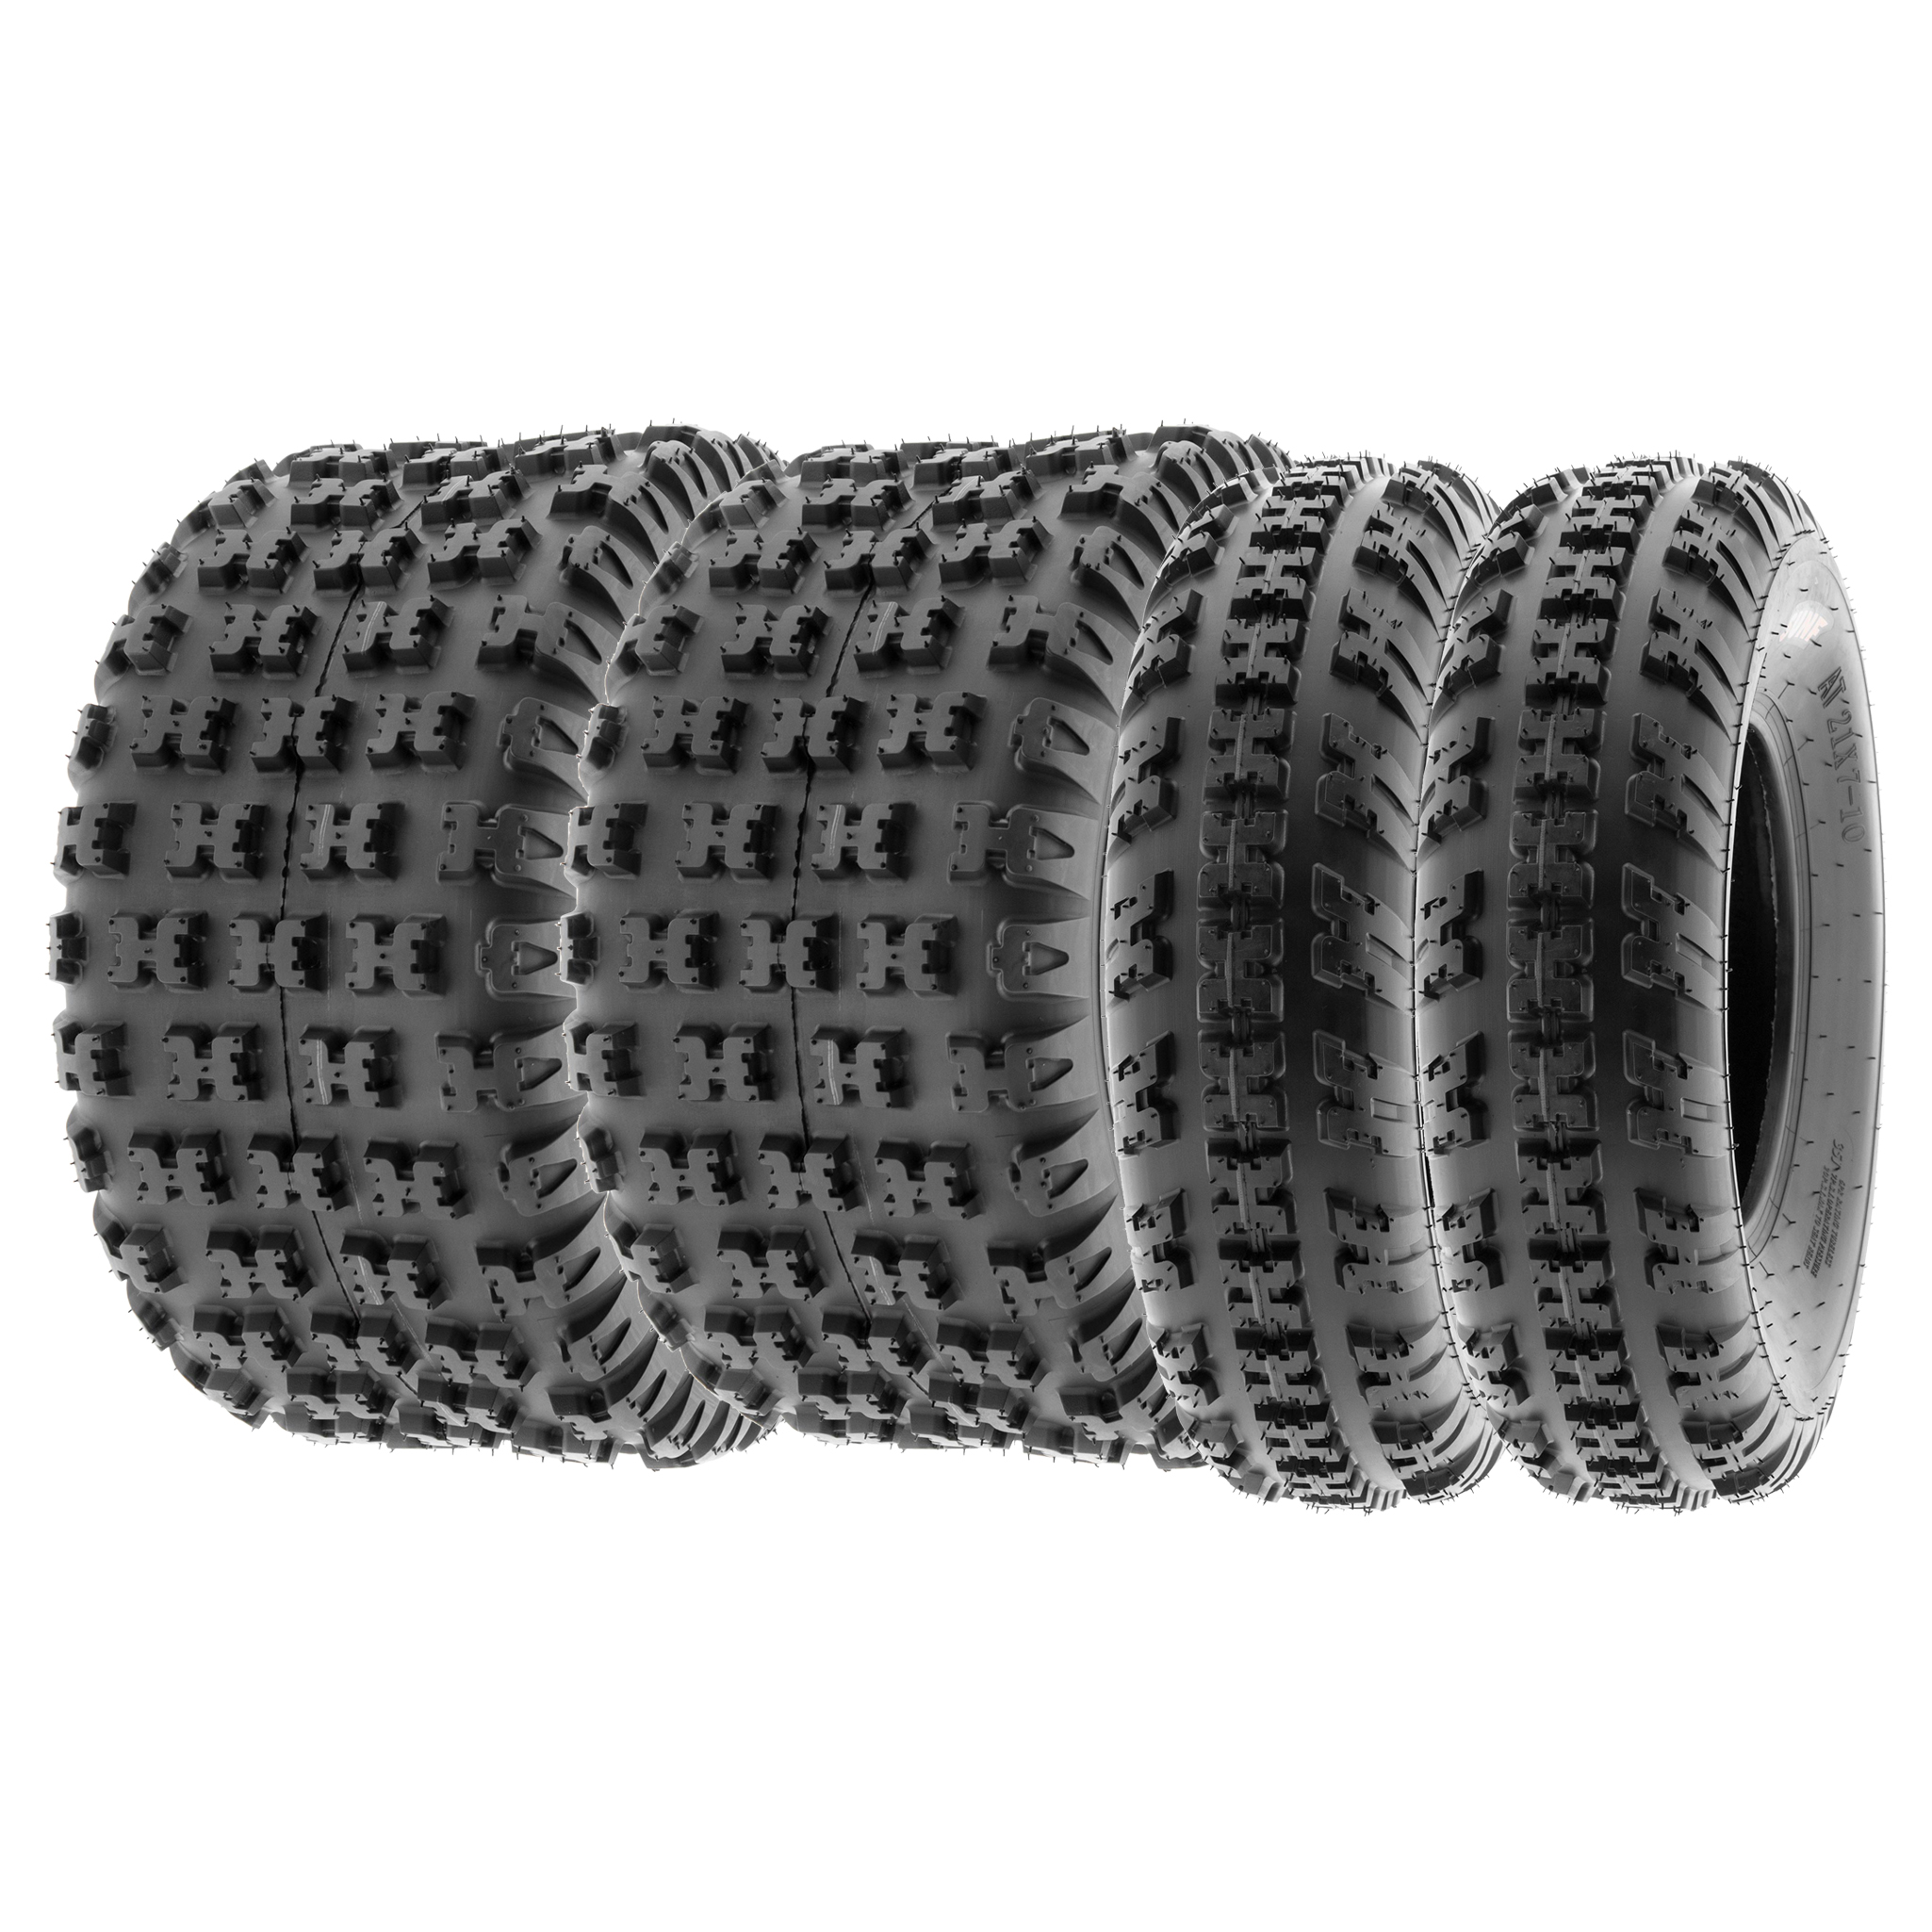 20x6-10 20x6x10 ATV Sport Trail AT 6 Ply Tire A031 by SunF